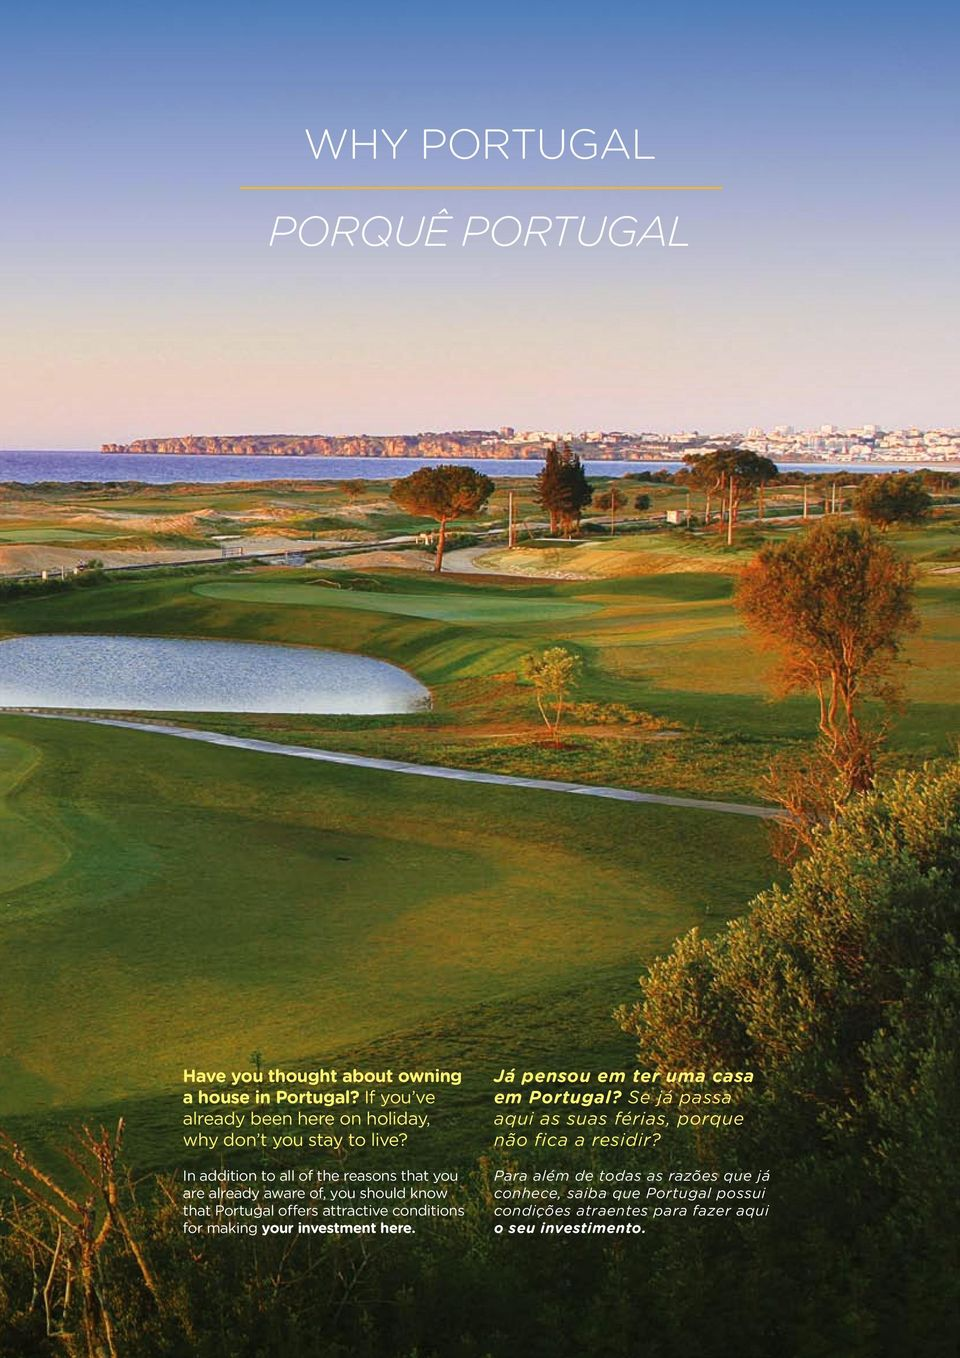 In addition to all of the reasons that you are already aware of, you should know that Portugal offers attractive conditions for